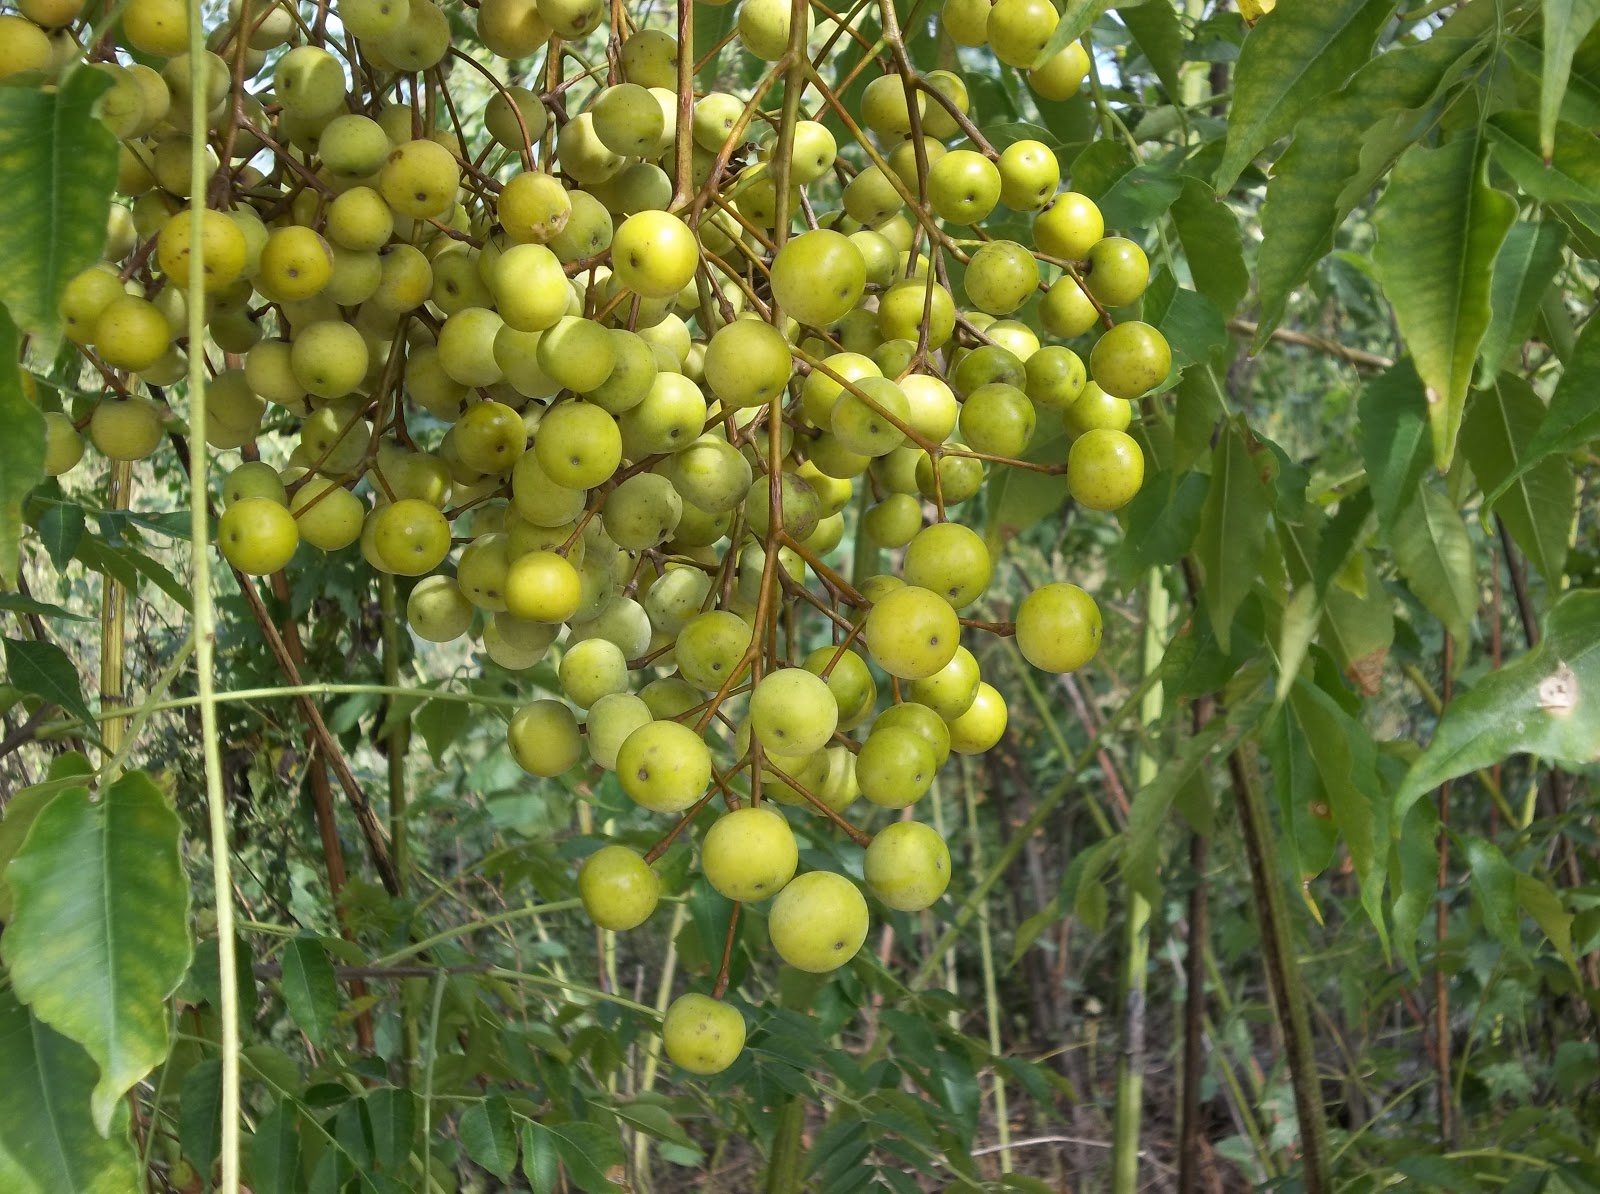 small yellow fruit that grows on trees